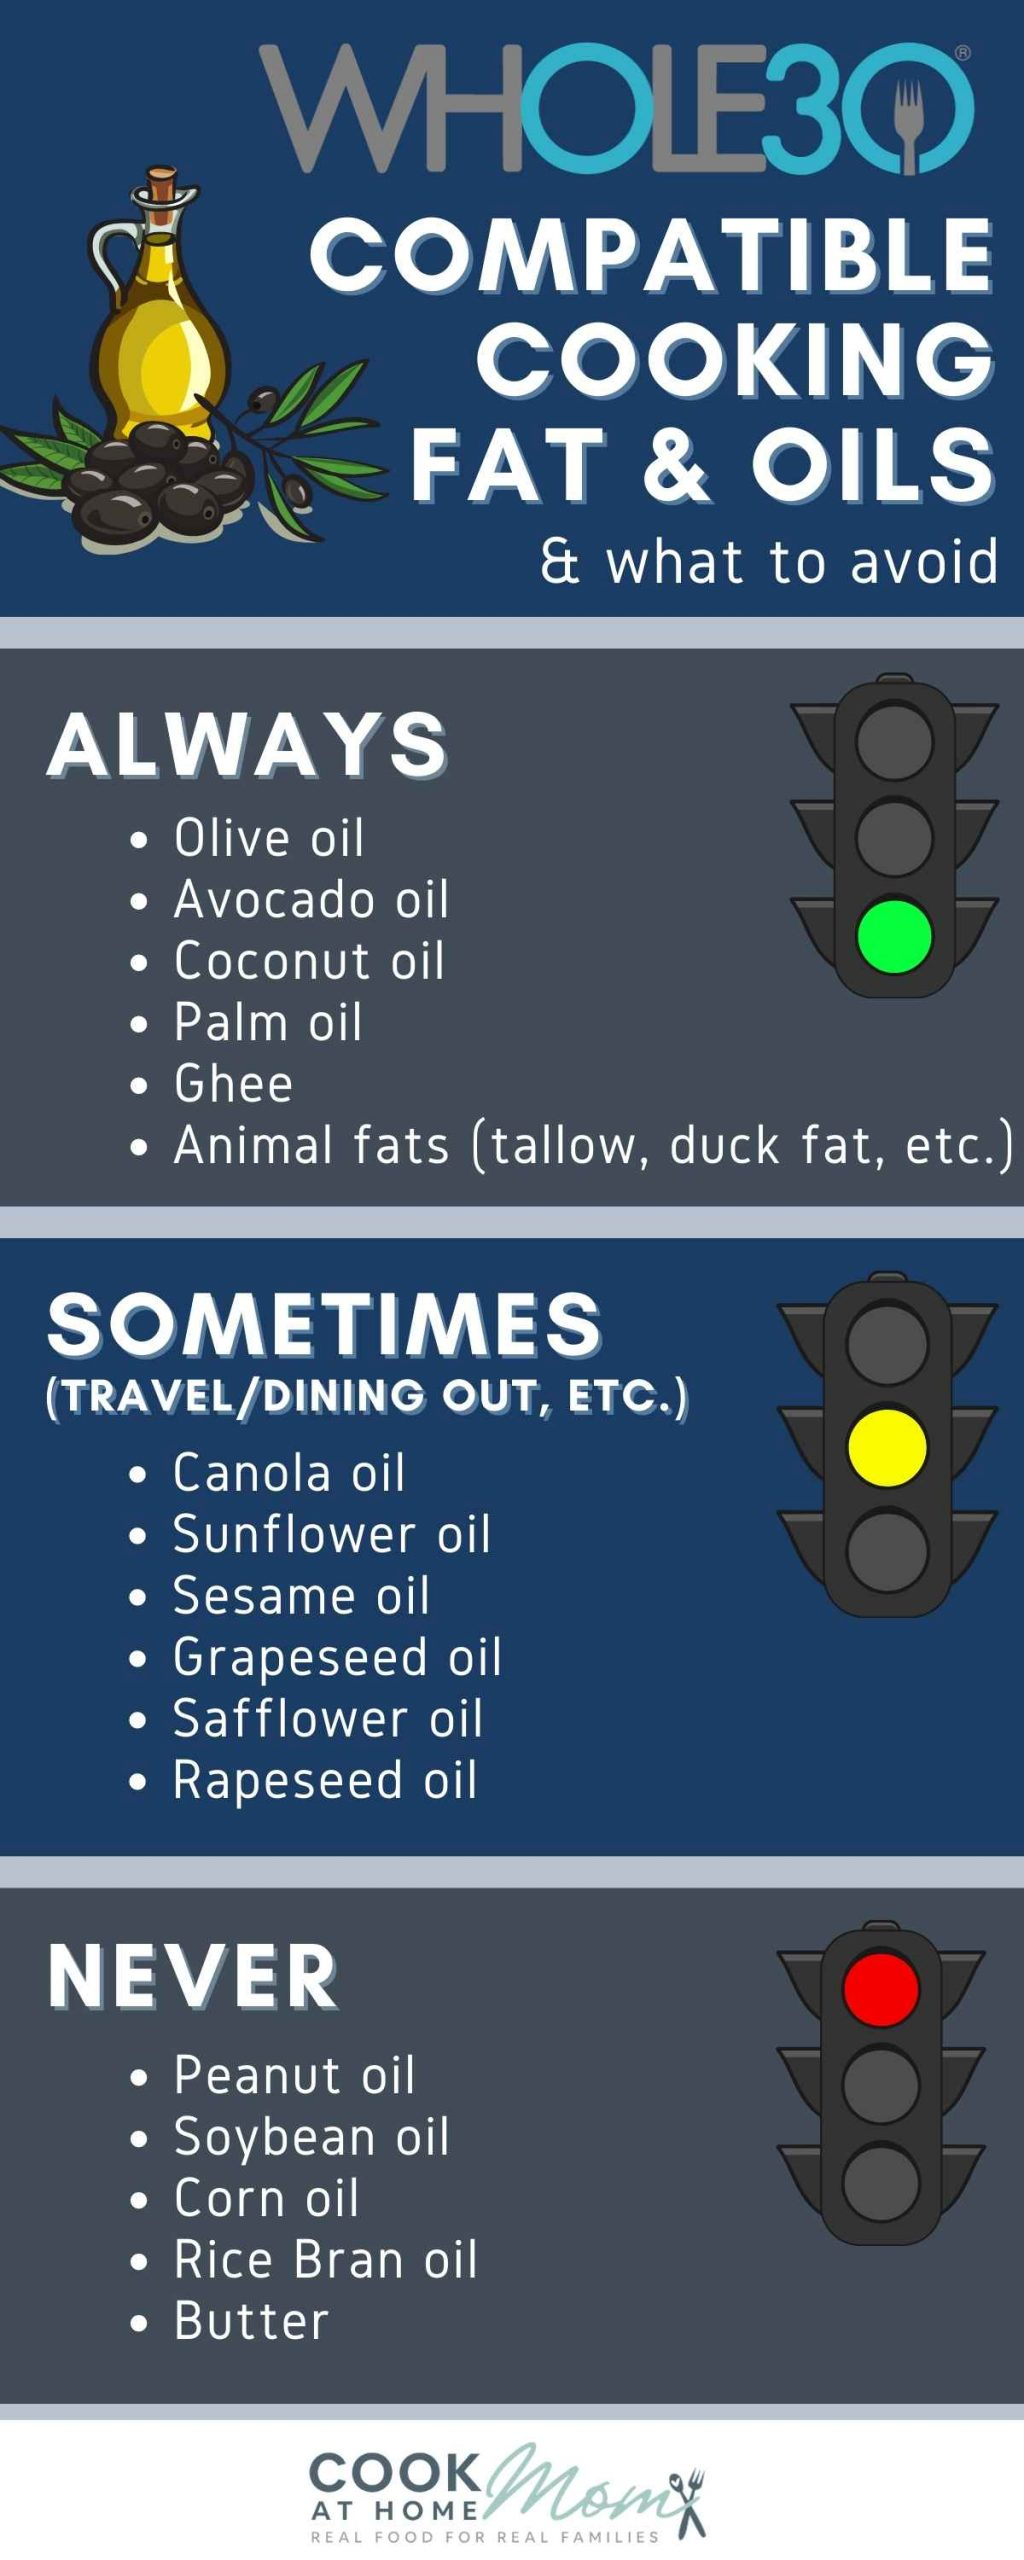 Infographic showing the Whole30 compatible cooking fats and oils, and what to avoid: Always, sometimes, and never.